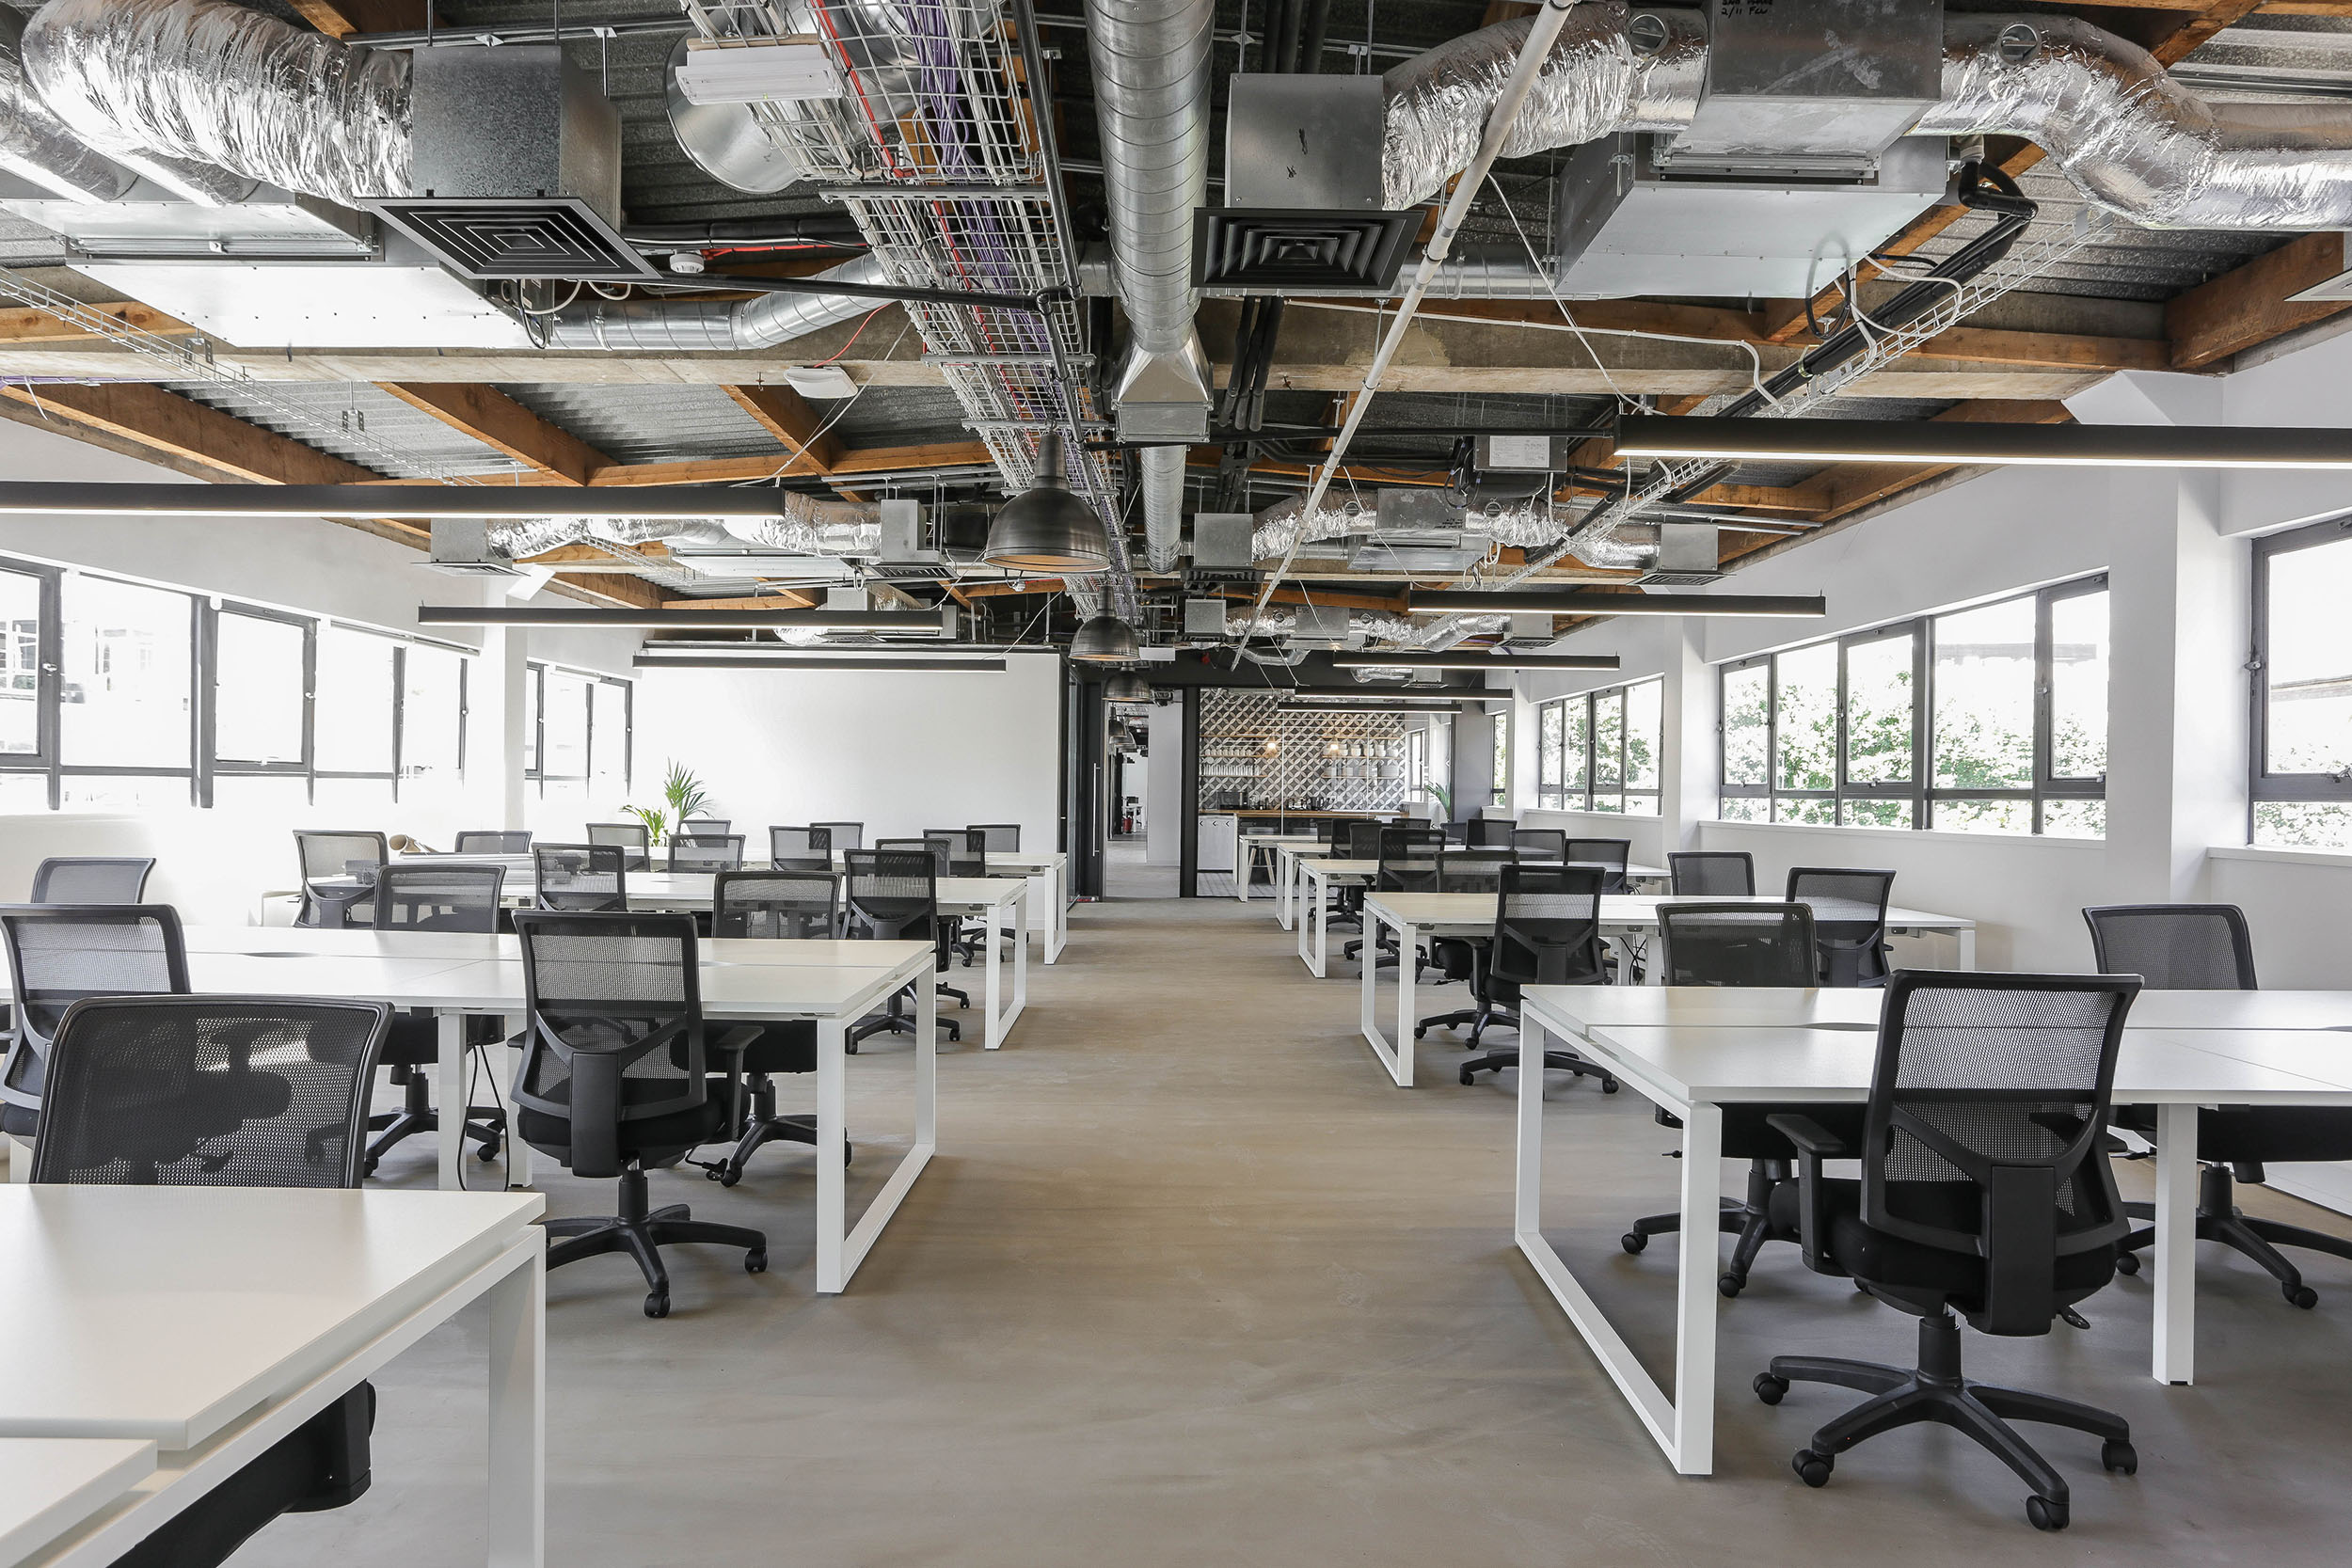 100 person workspace